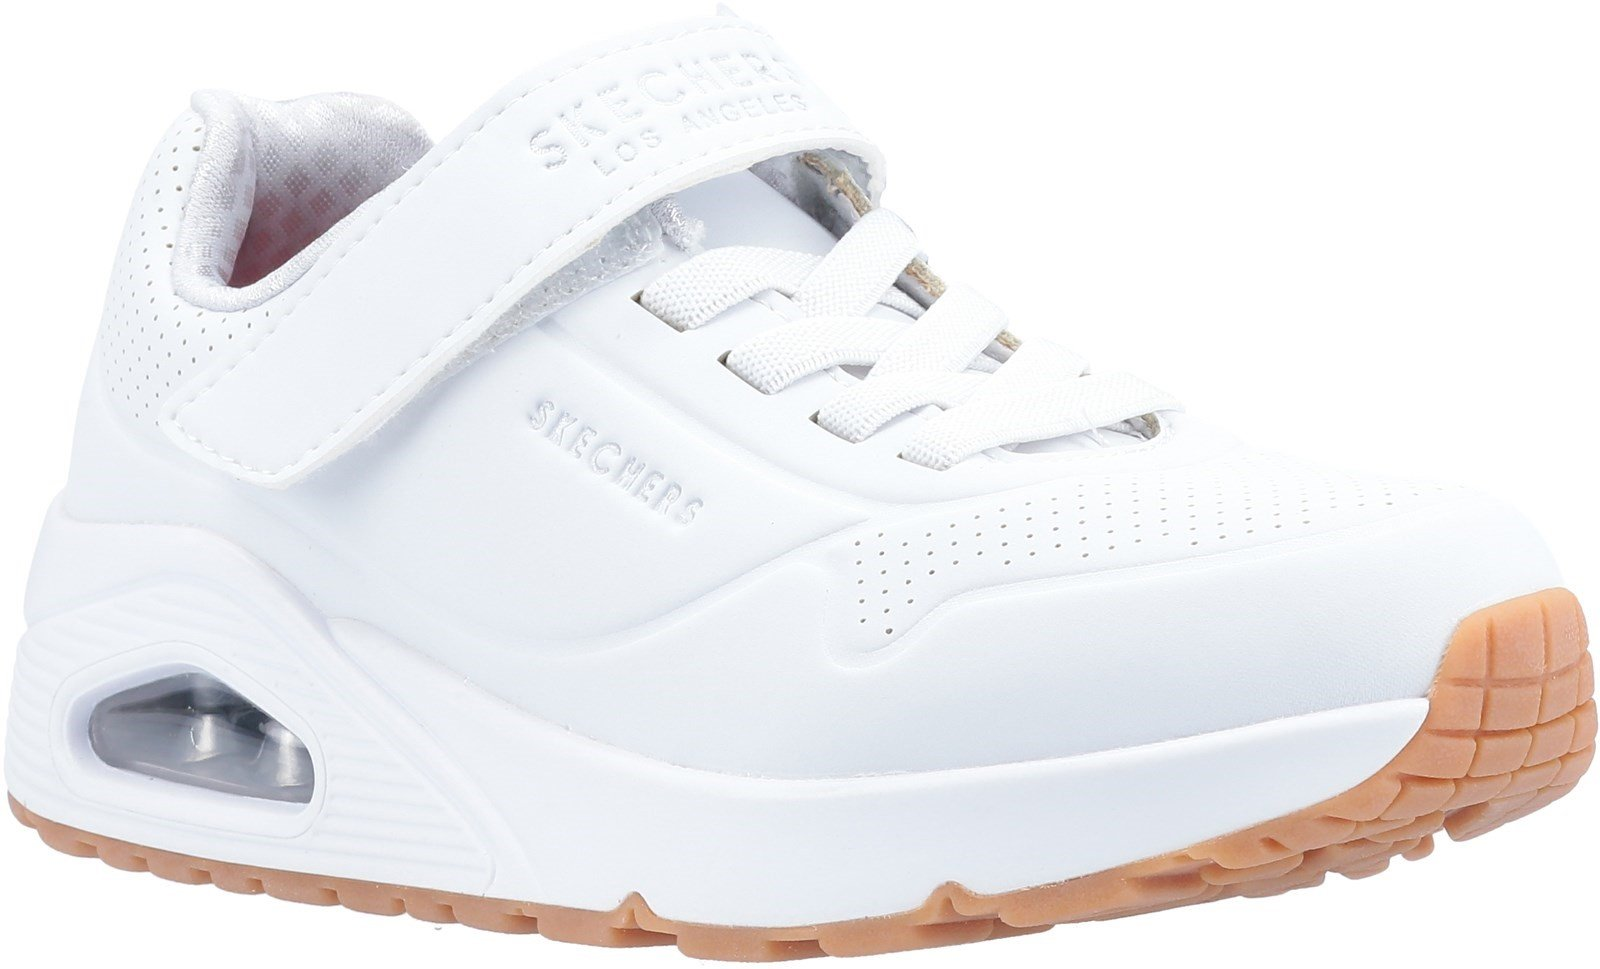 Skechers Kid's Uno Air Blitz Casual Trainer Various Colours 30898 - White 12